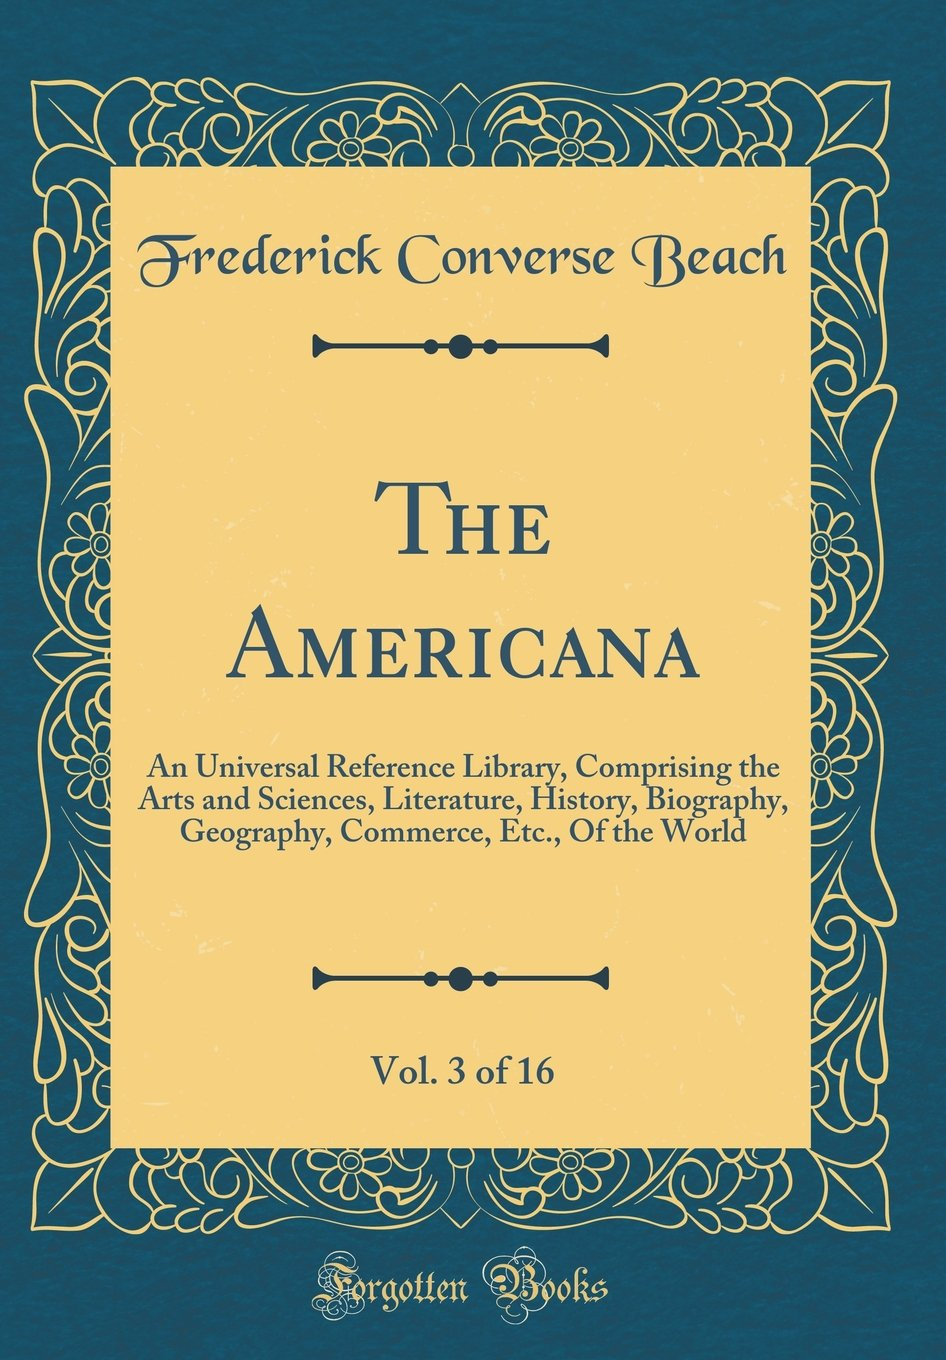 Download The Americana, Vol. 3 of 16: An Universal Reference Library, Comprising the Arts and Sciences, Literature, History, Biography, Geography, Commerce, Etc., Of the World (Classic Reprint) pdf